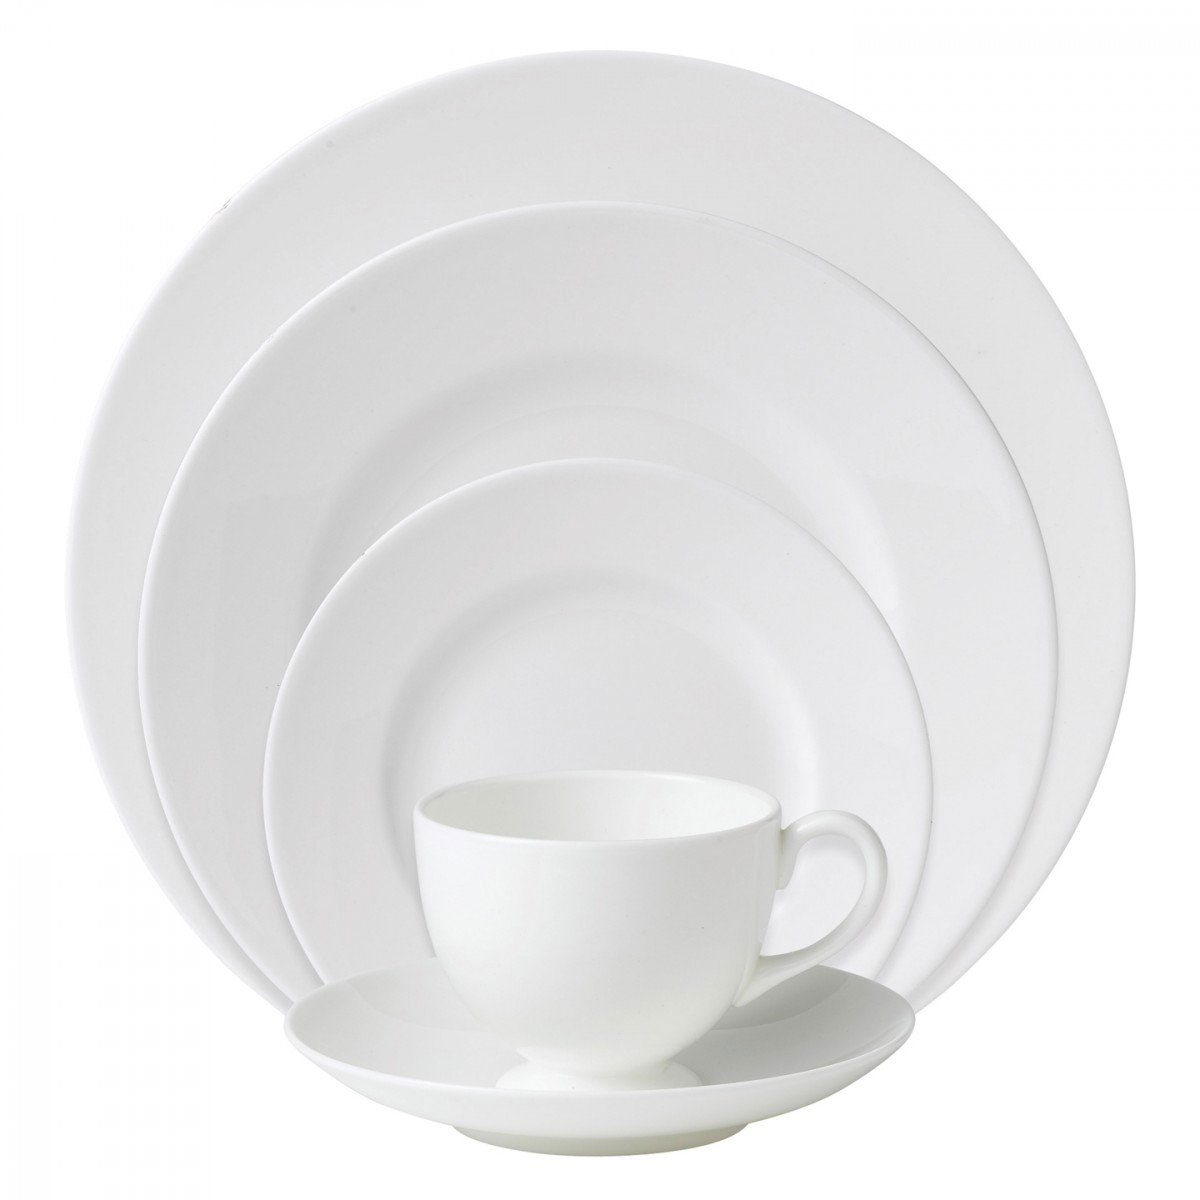 Wedgwood China White, 5 Piece Place Setting